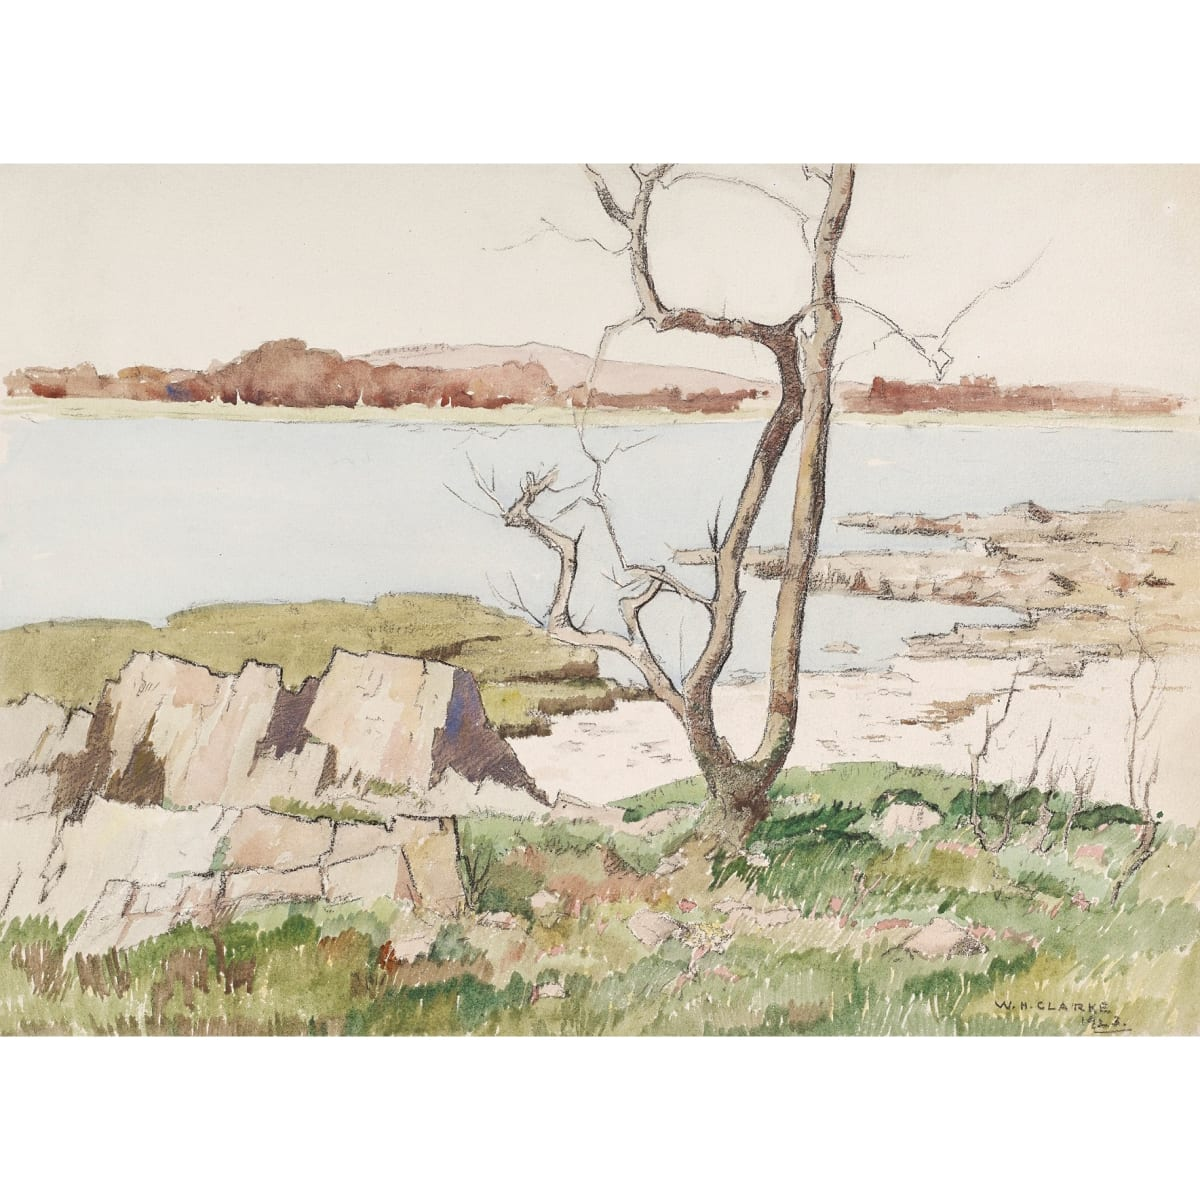 William Hanna Clarke Estuary - the Dee, 1923 signed and dated 1923 watercolour 11 x 15 1/4 inches